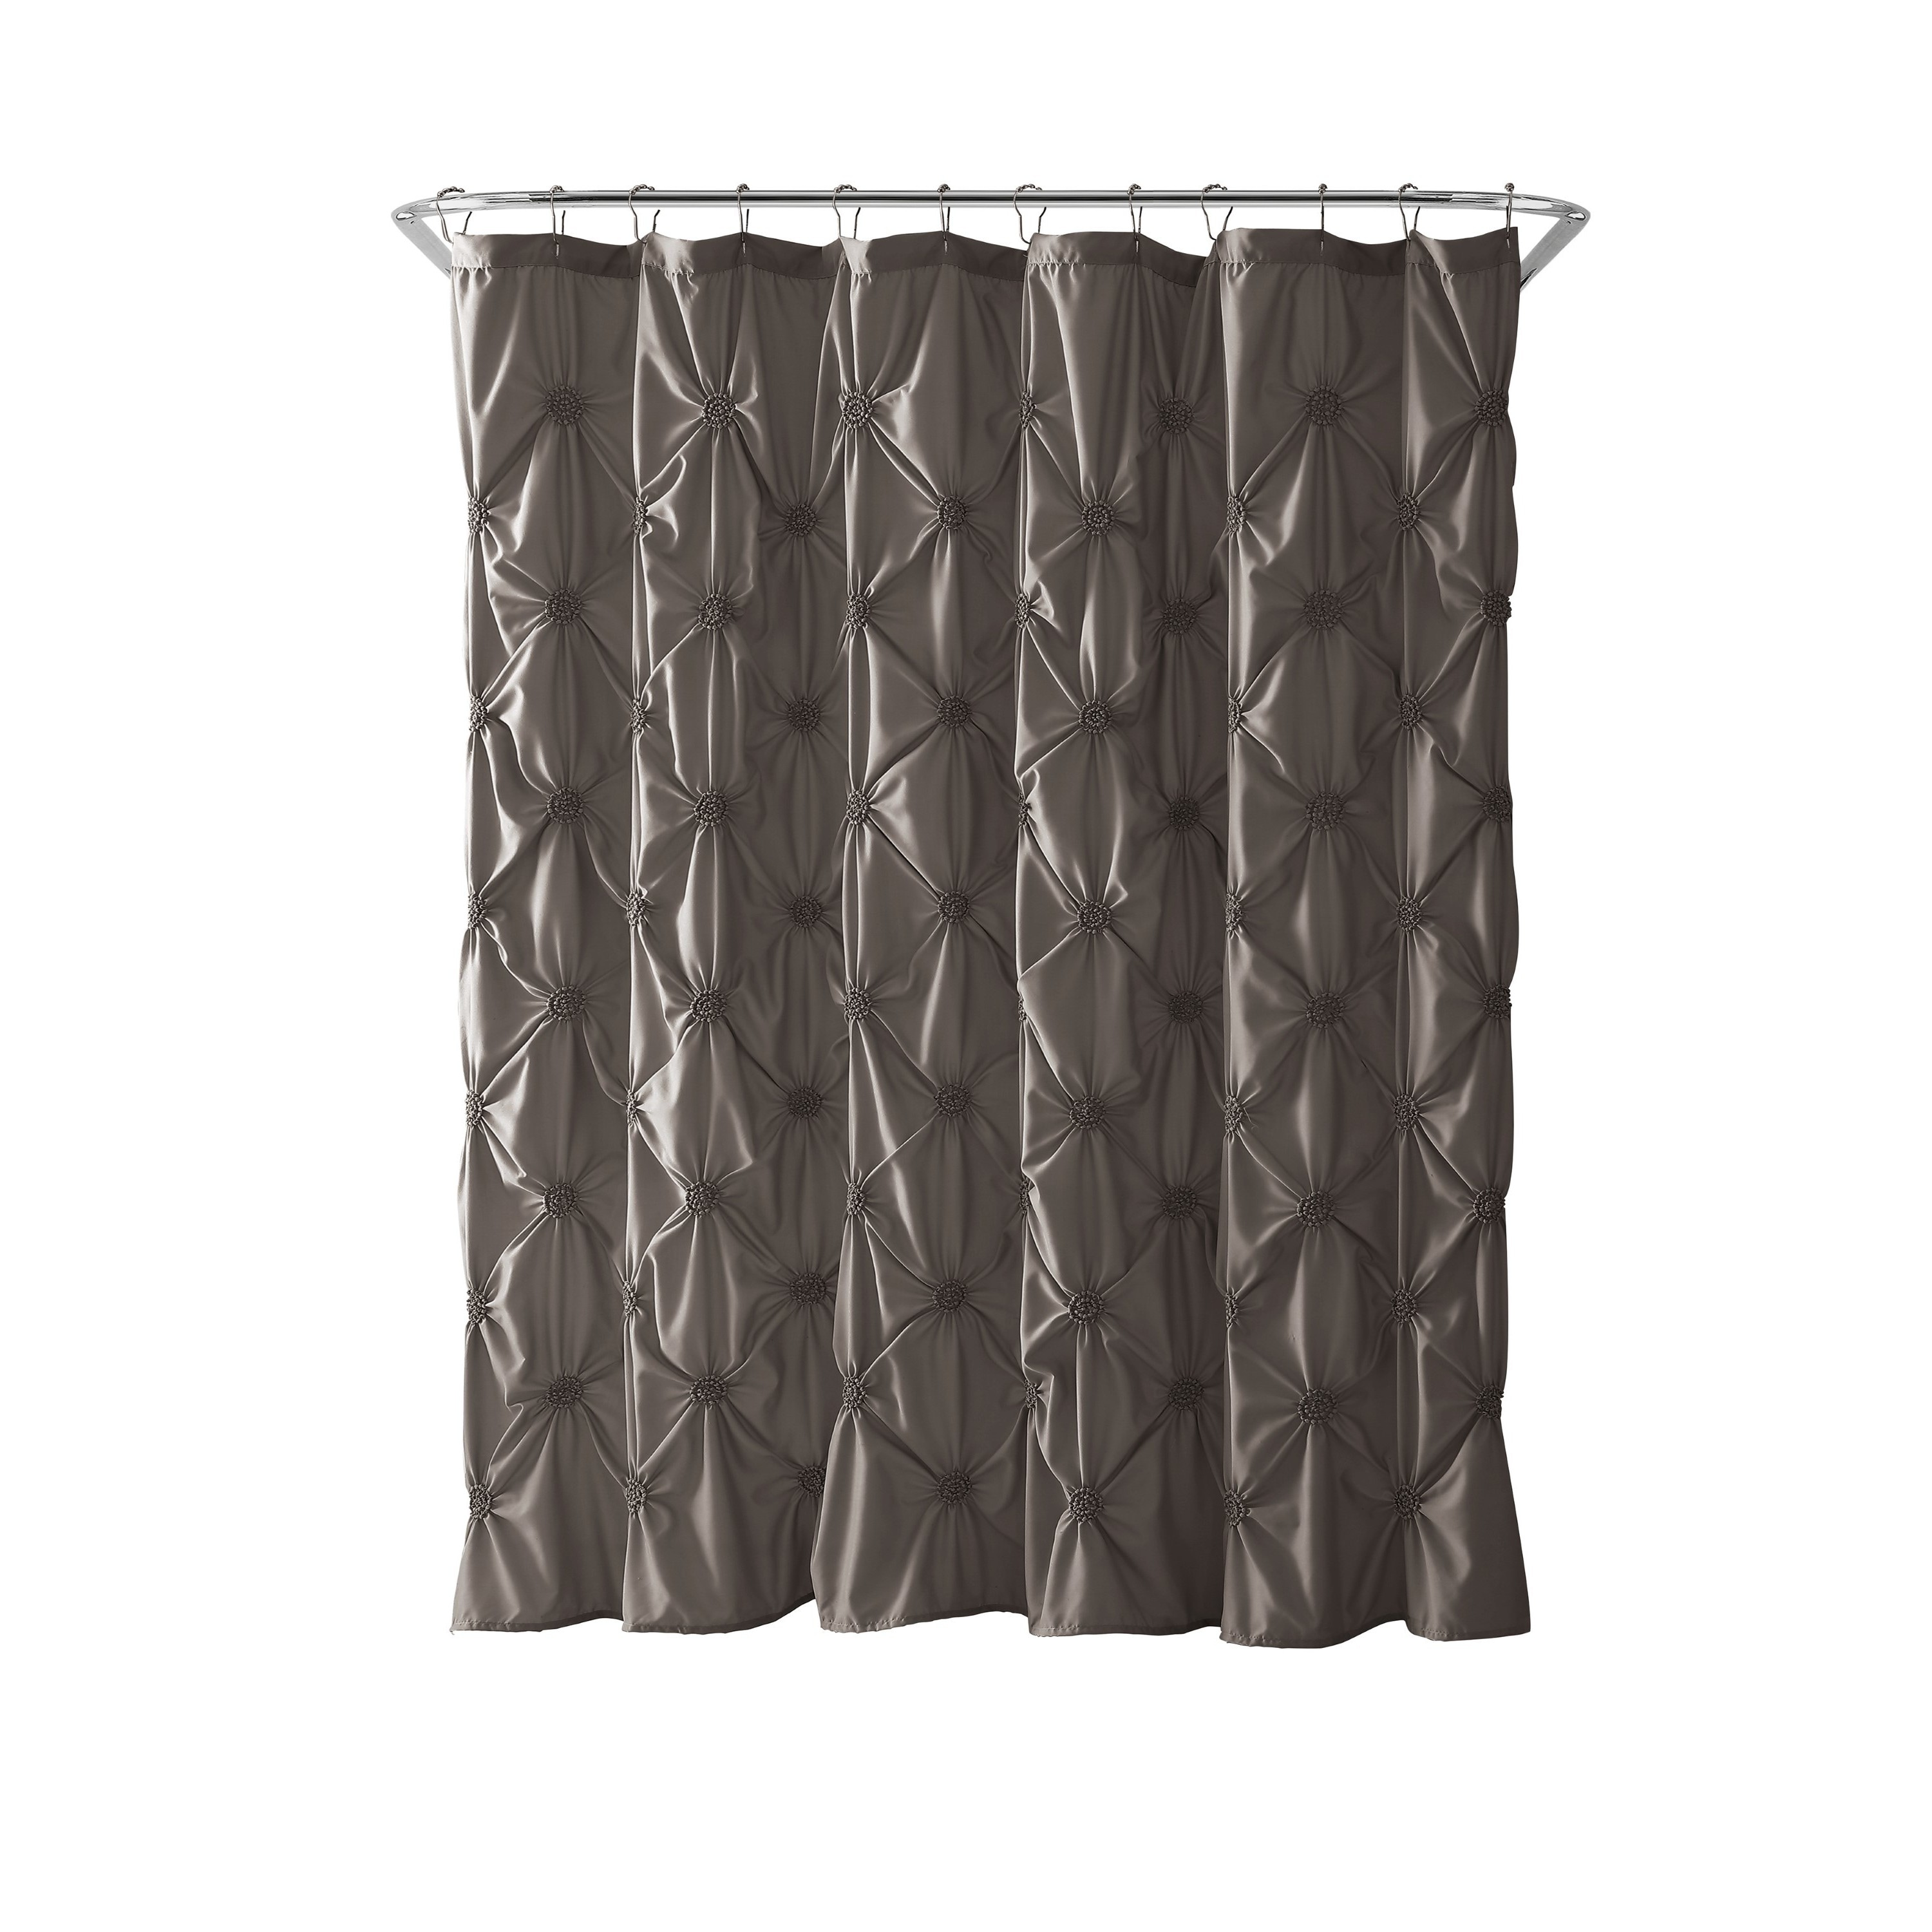 and maribella charcoal of shower curtains ruffled ombre curtain attachment black purple elegant